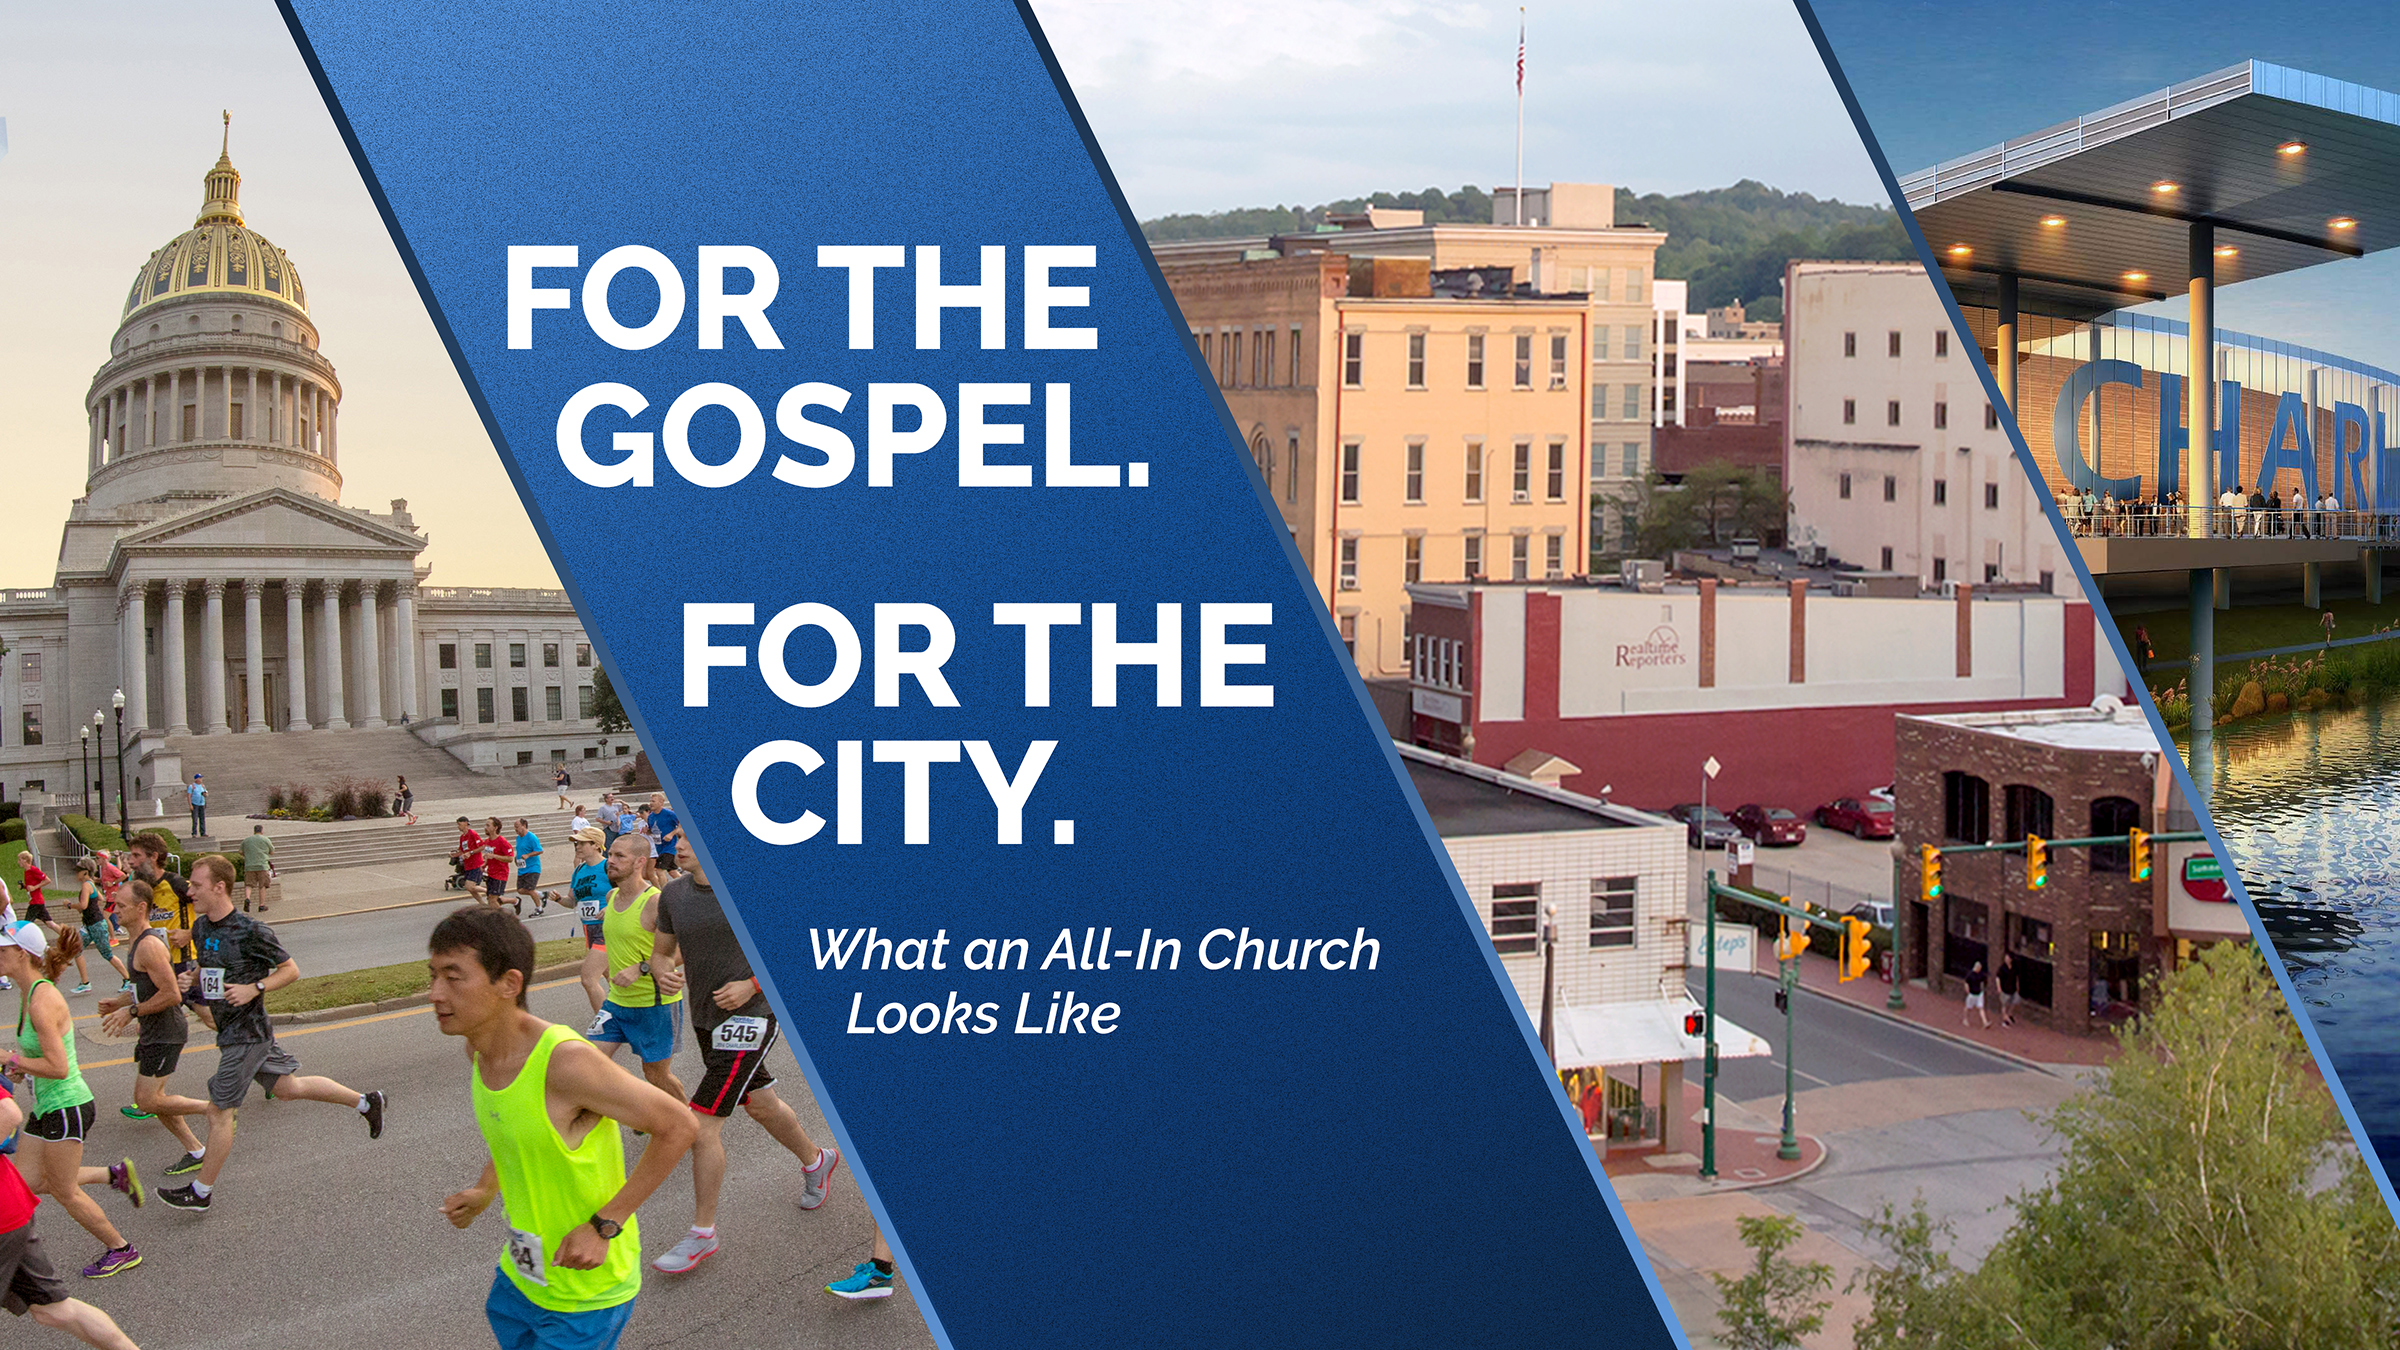 For the Gospel. For the City.